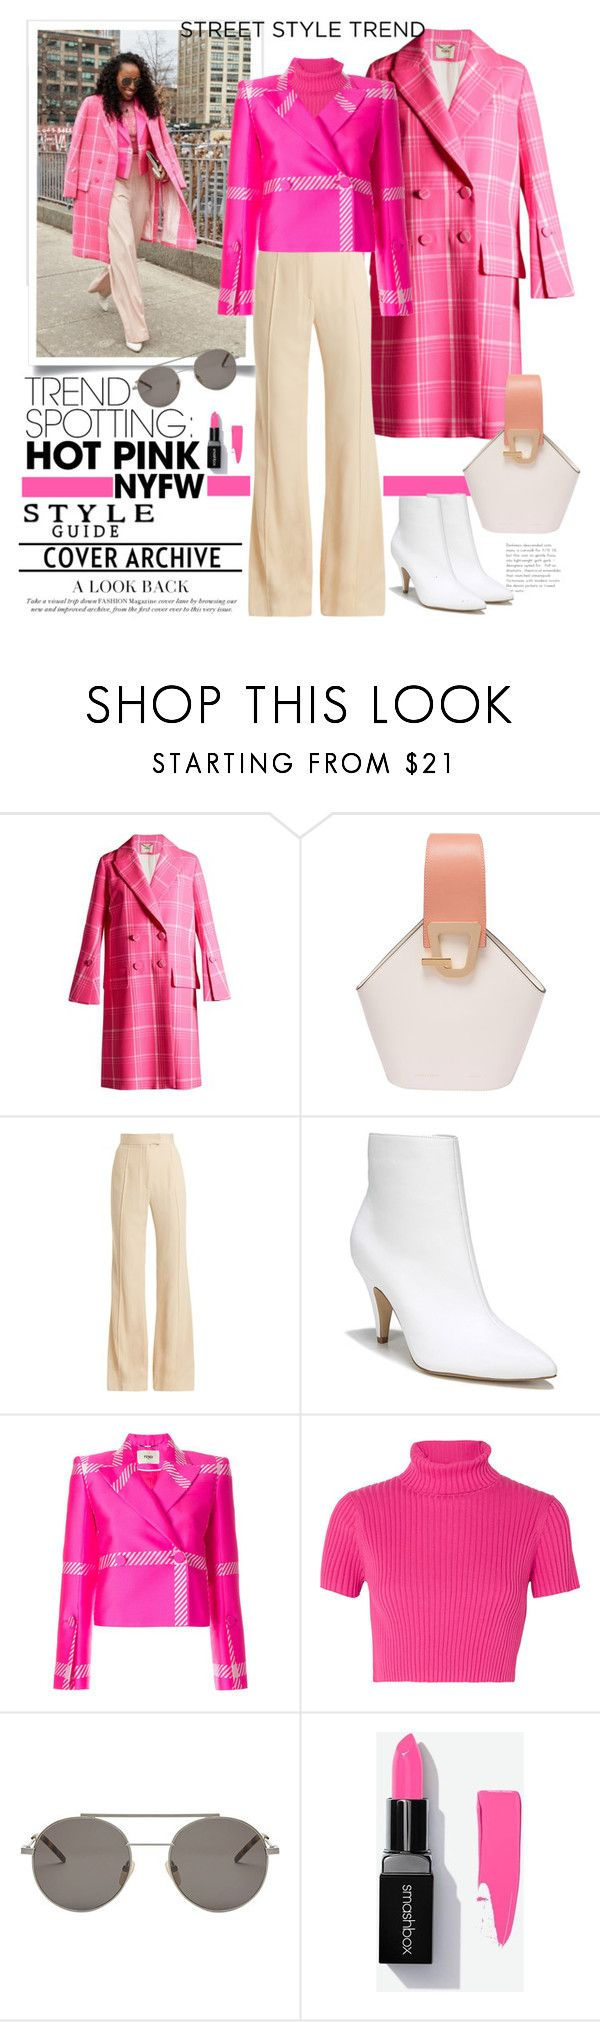 """""""Shop It! Fashion Week Street Style Hot Pink"""" by ellie366 on Polyvore featuring Fendi, Danse Lente, Khaite, Carlos by Carlos Santana, Staud, widelegpants, contestentry, nyfwstreetstyle, statementcoats and NYFWHotPink"""